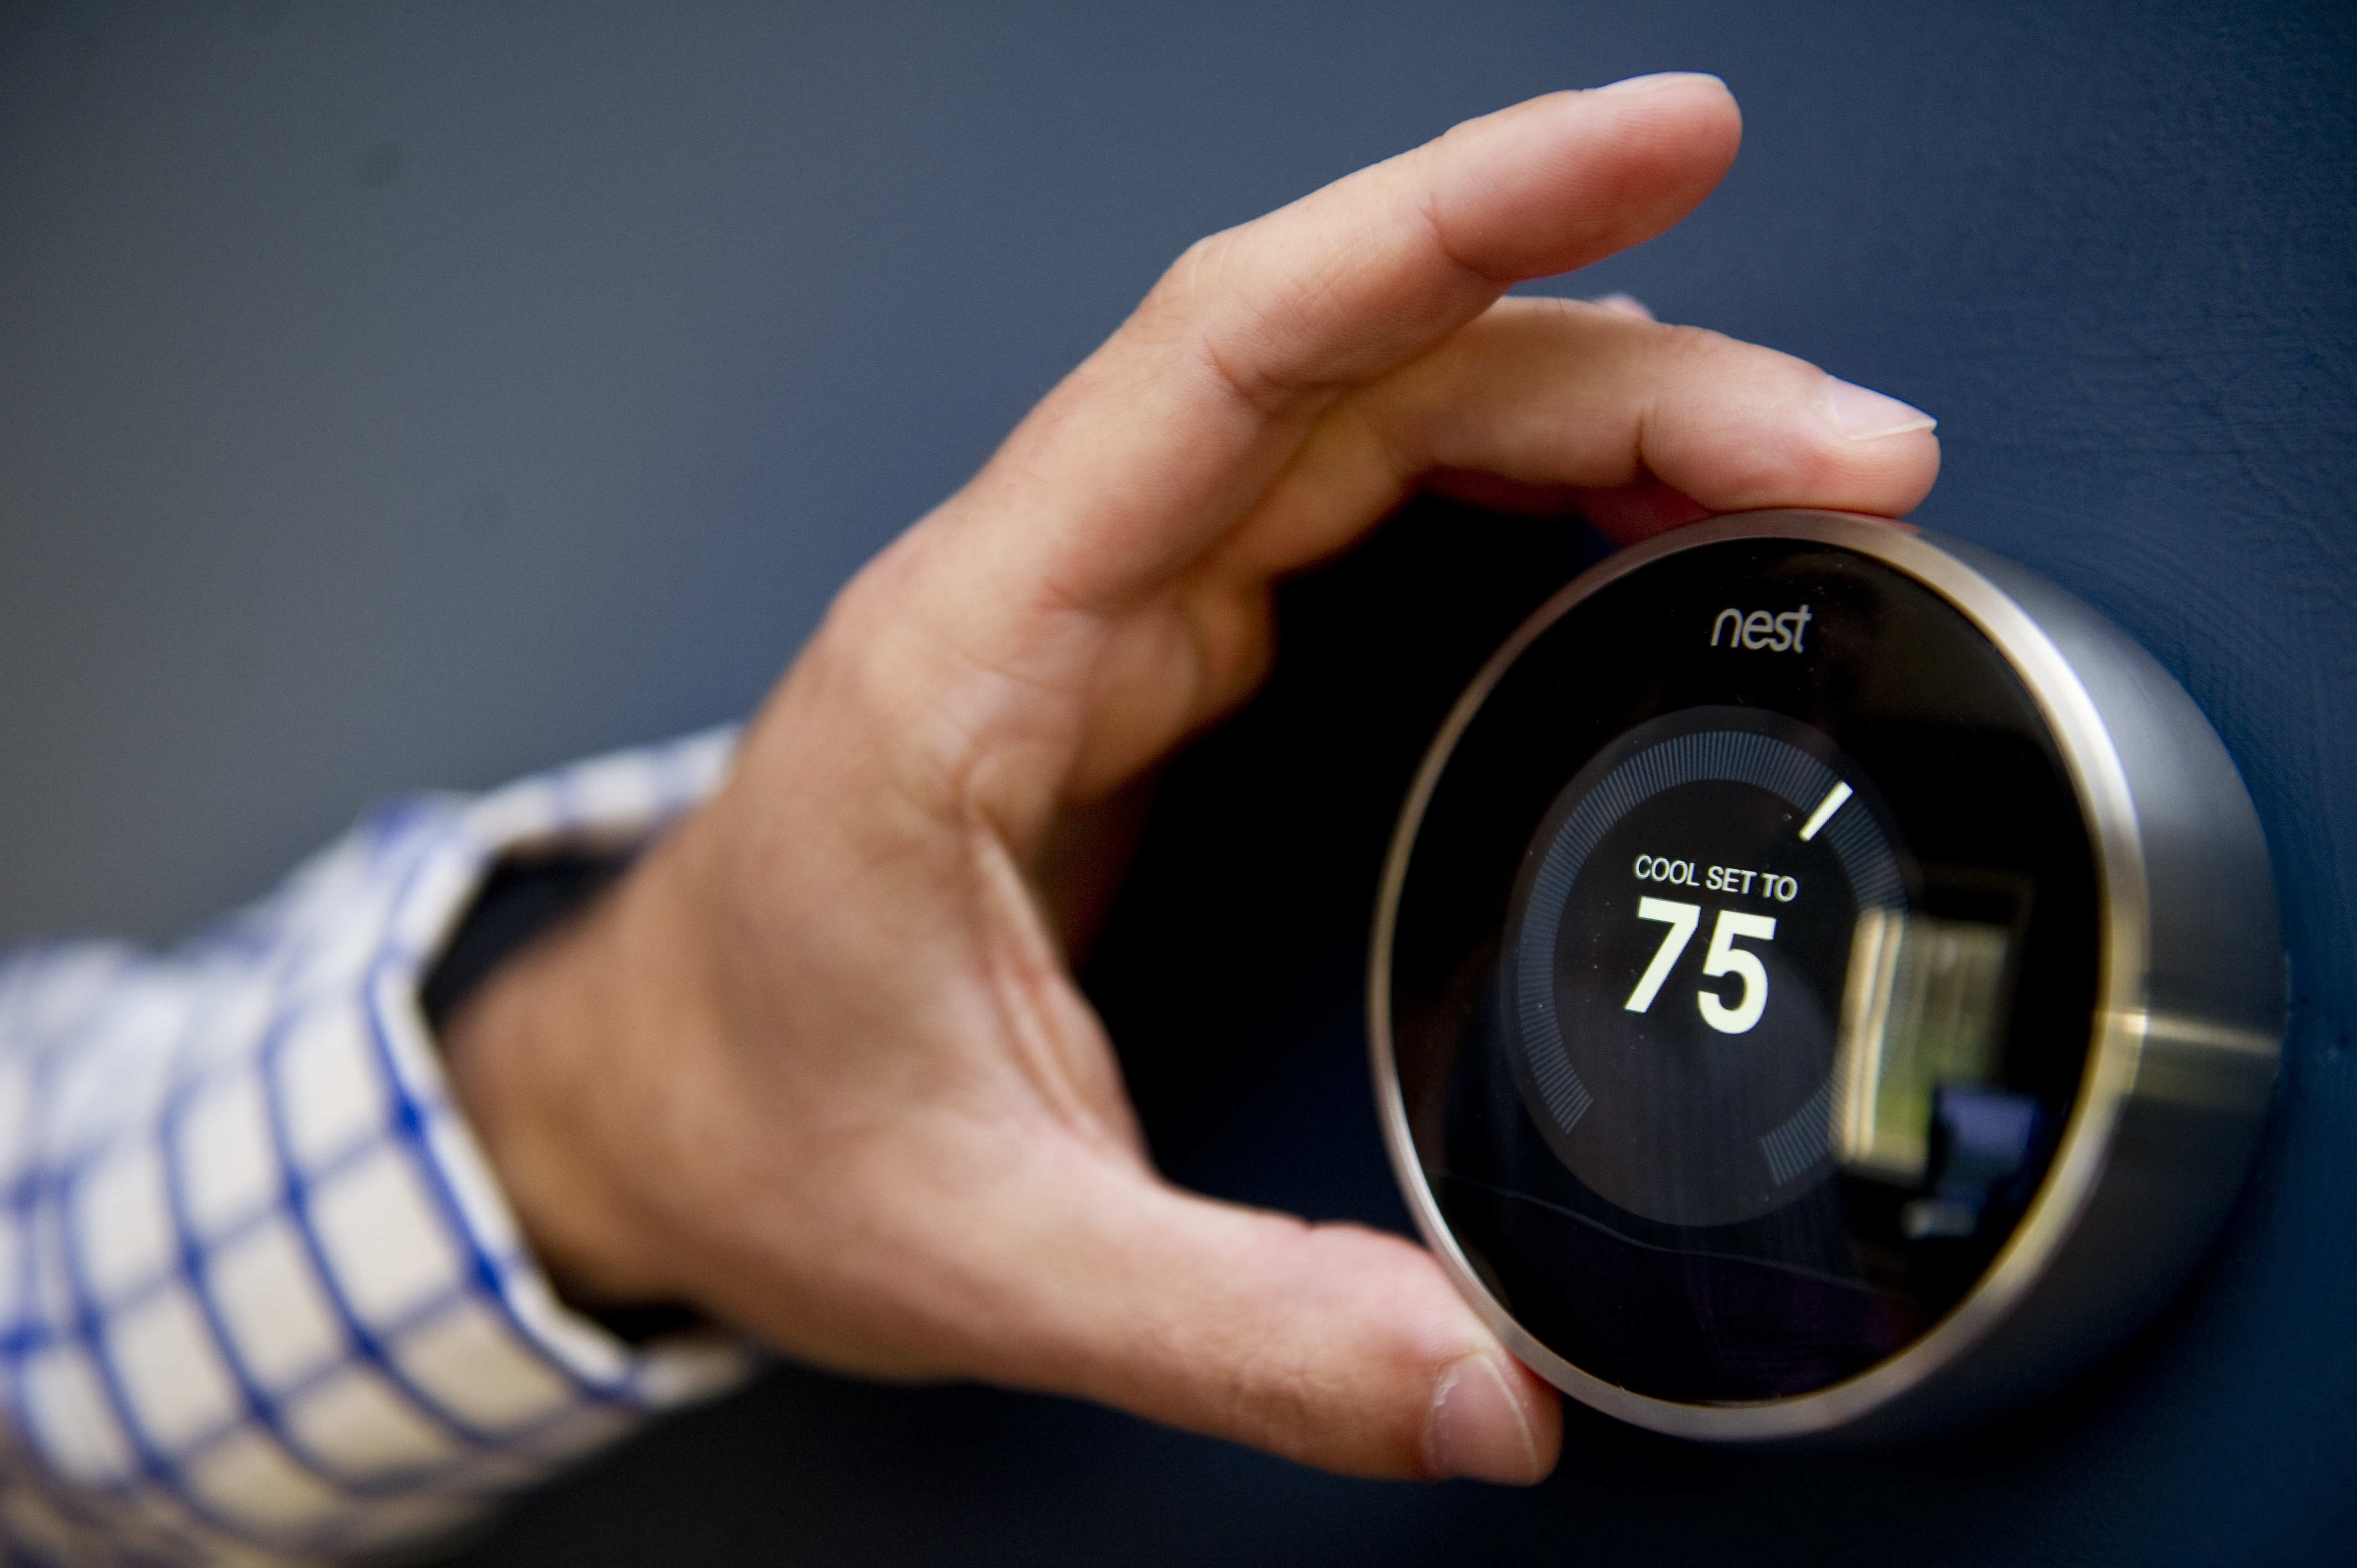 Nick DeLena adjusts his thermostat from Nest Labs in his home on August 12, 2013 in West Newbury, Massachusetts.